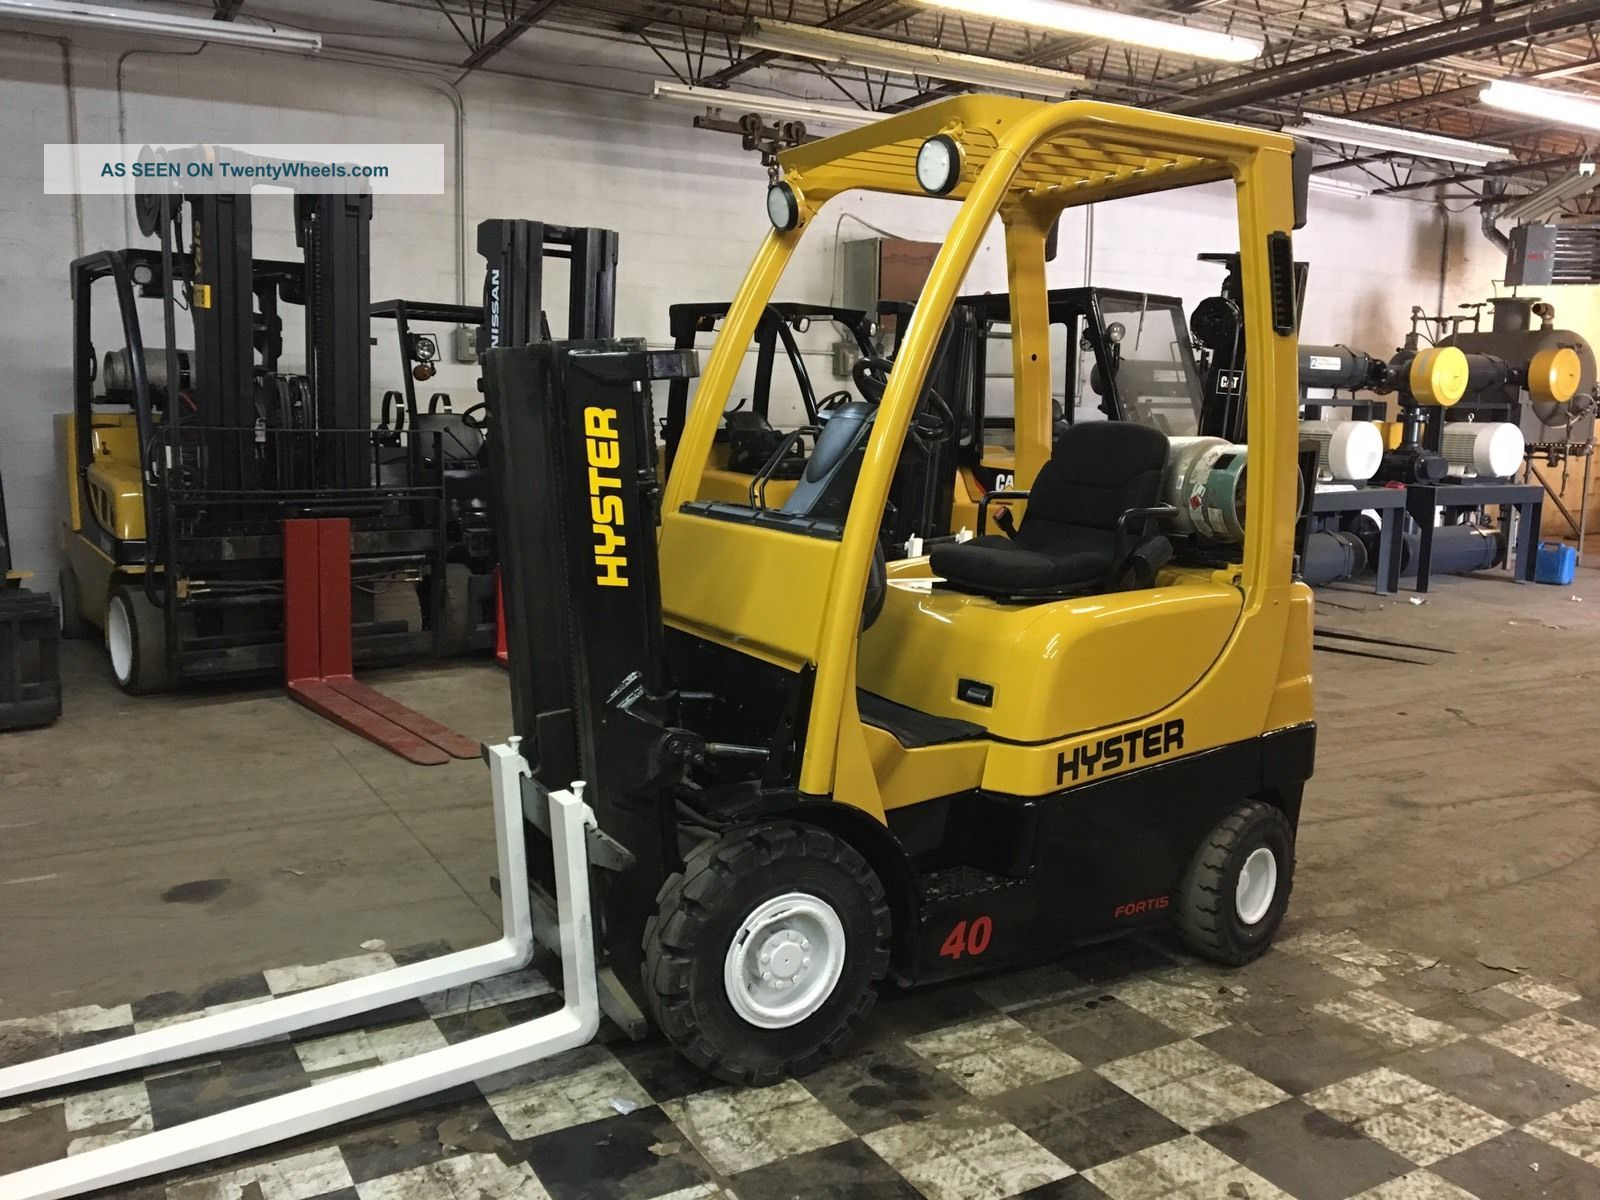 2008 Hyster Pneumatic Forklift 4000 Pound Capacity Forklifts photo